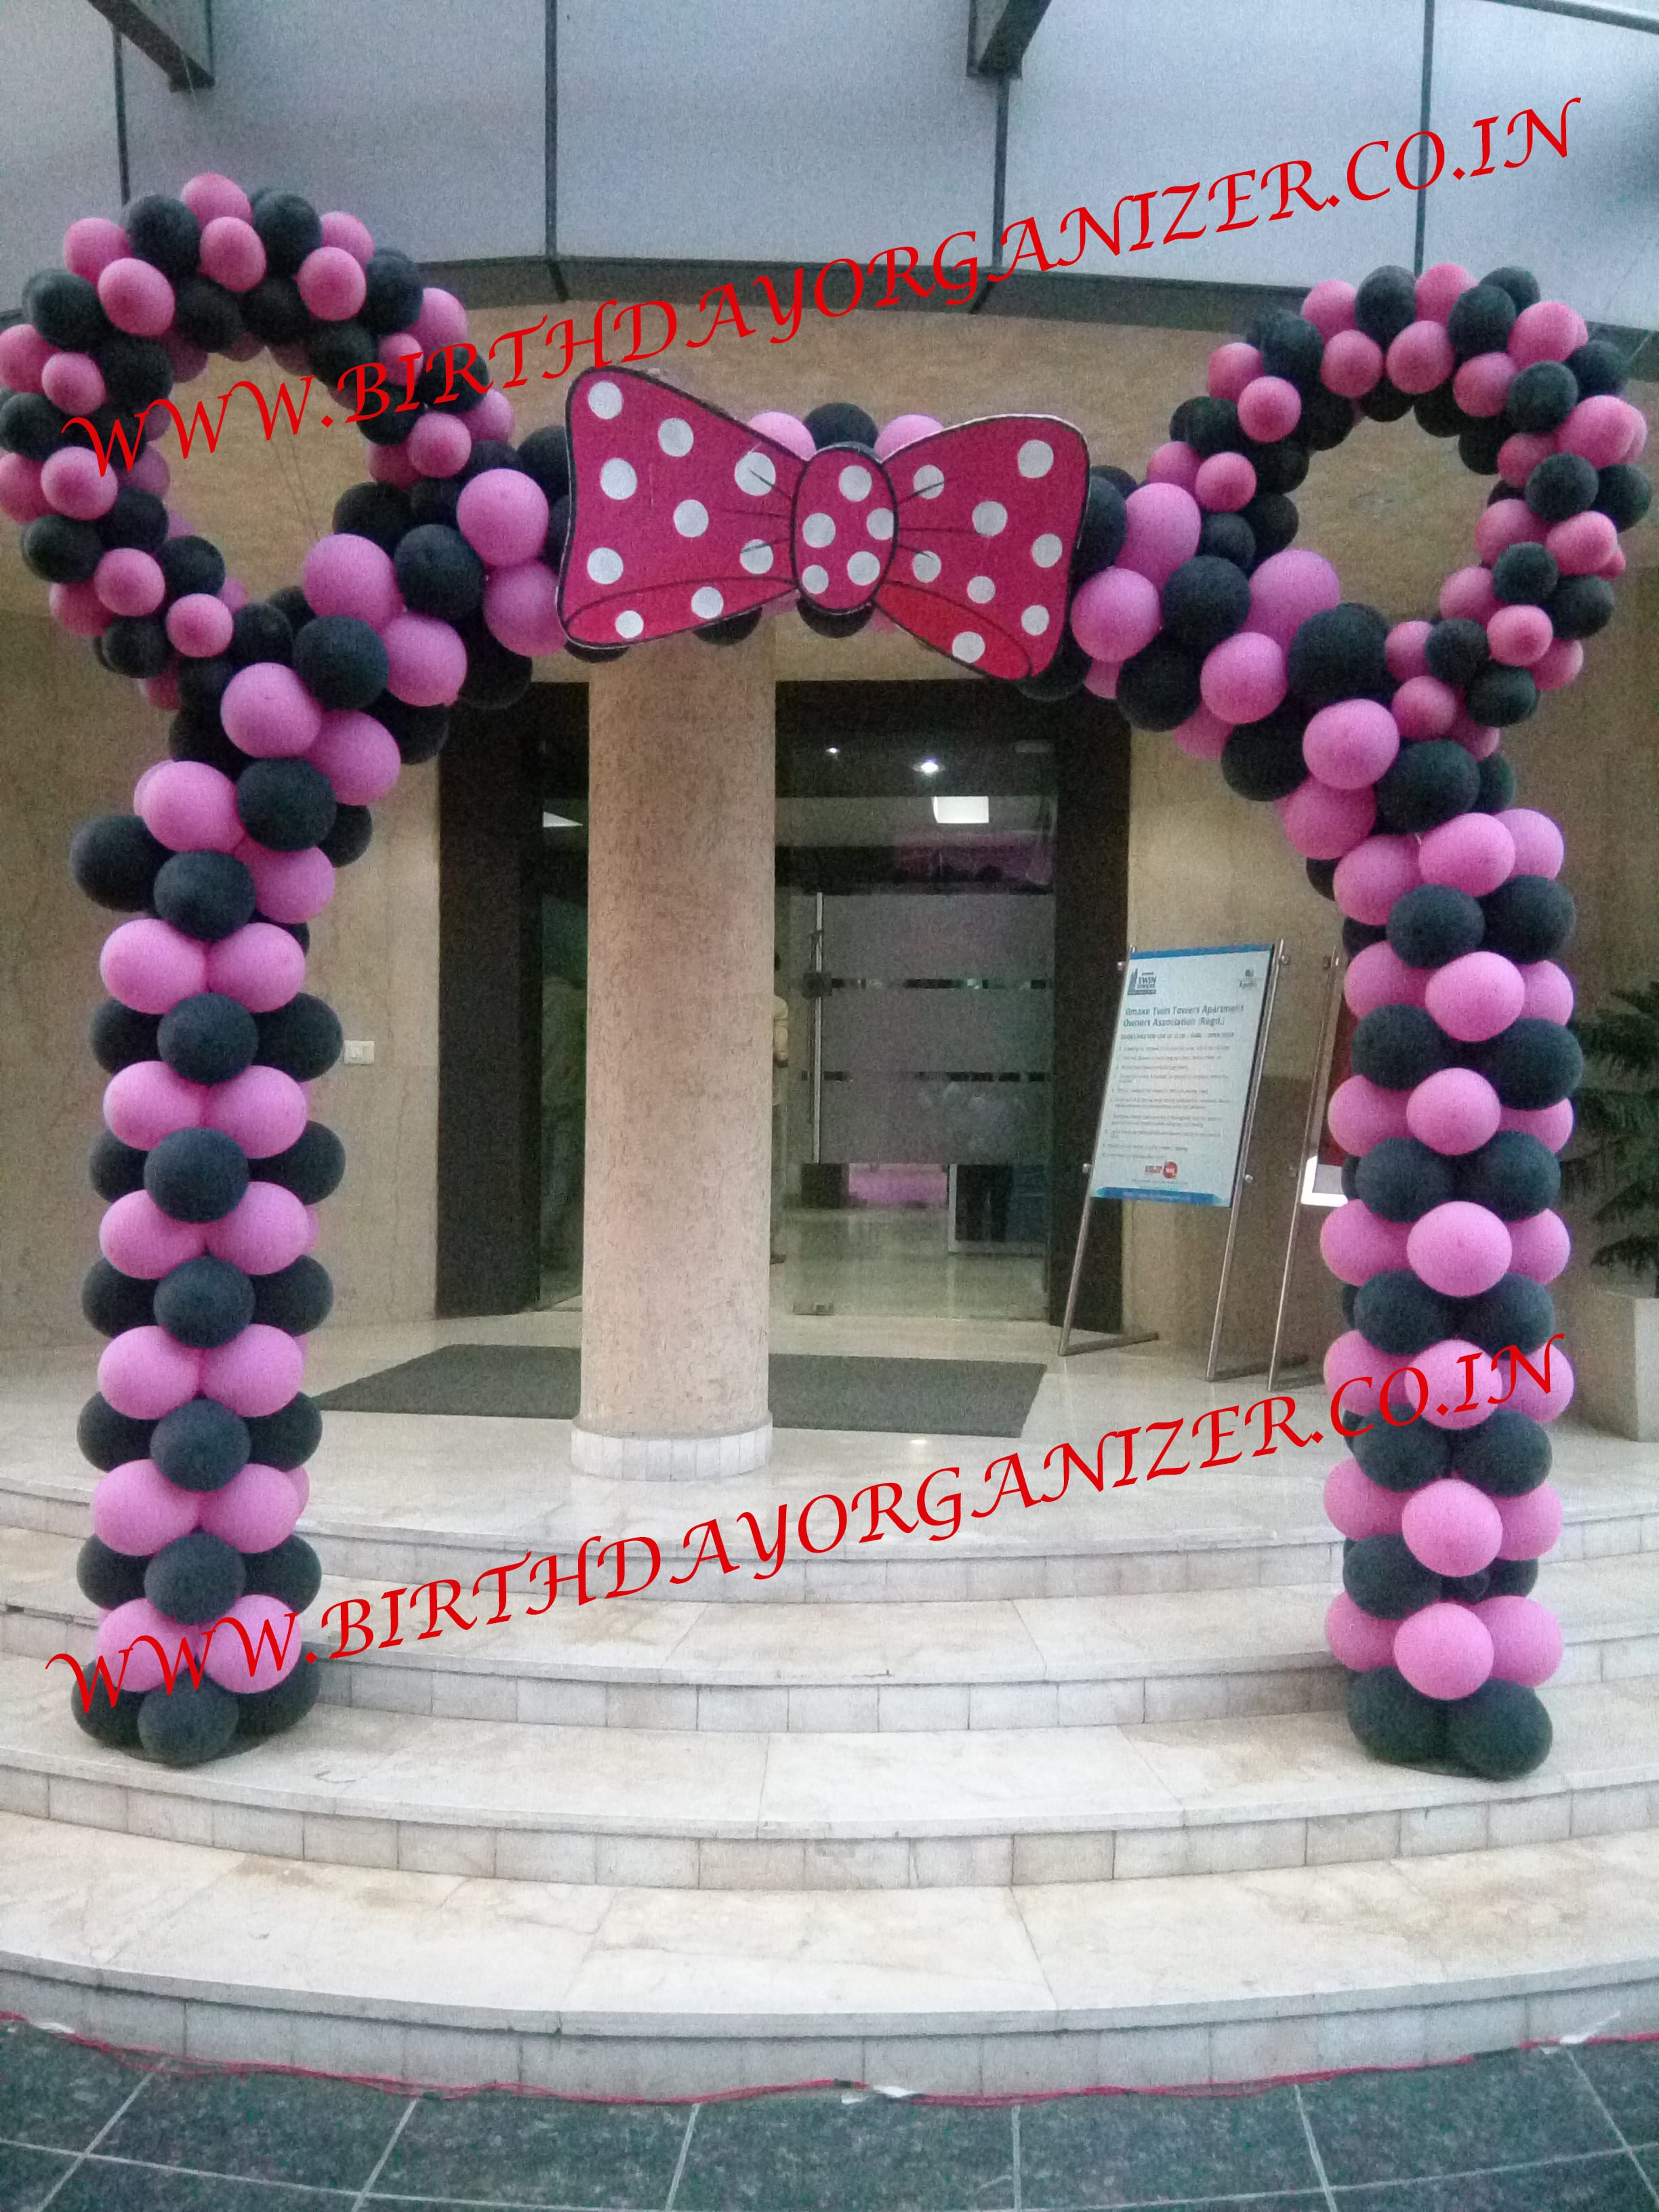 minnie mouse theme party balloon decoration in noida delhi ncr, minnie mouse theme party planner in noida delhi ncr gurgaon, minnie mouse theme decoration, minnie mouse theme party ideas